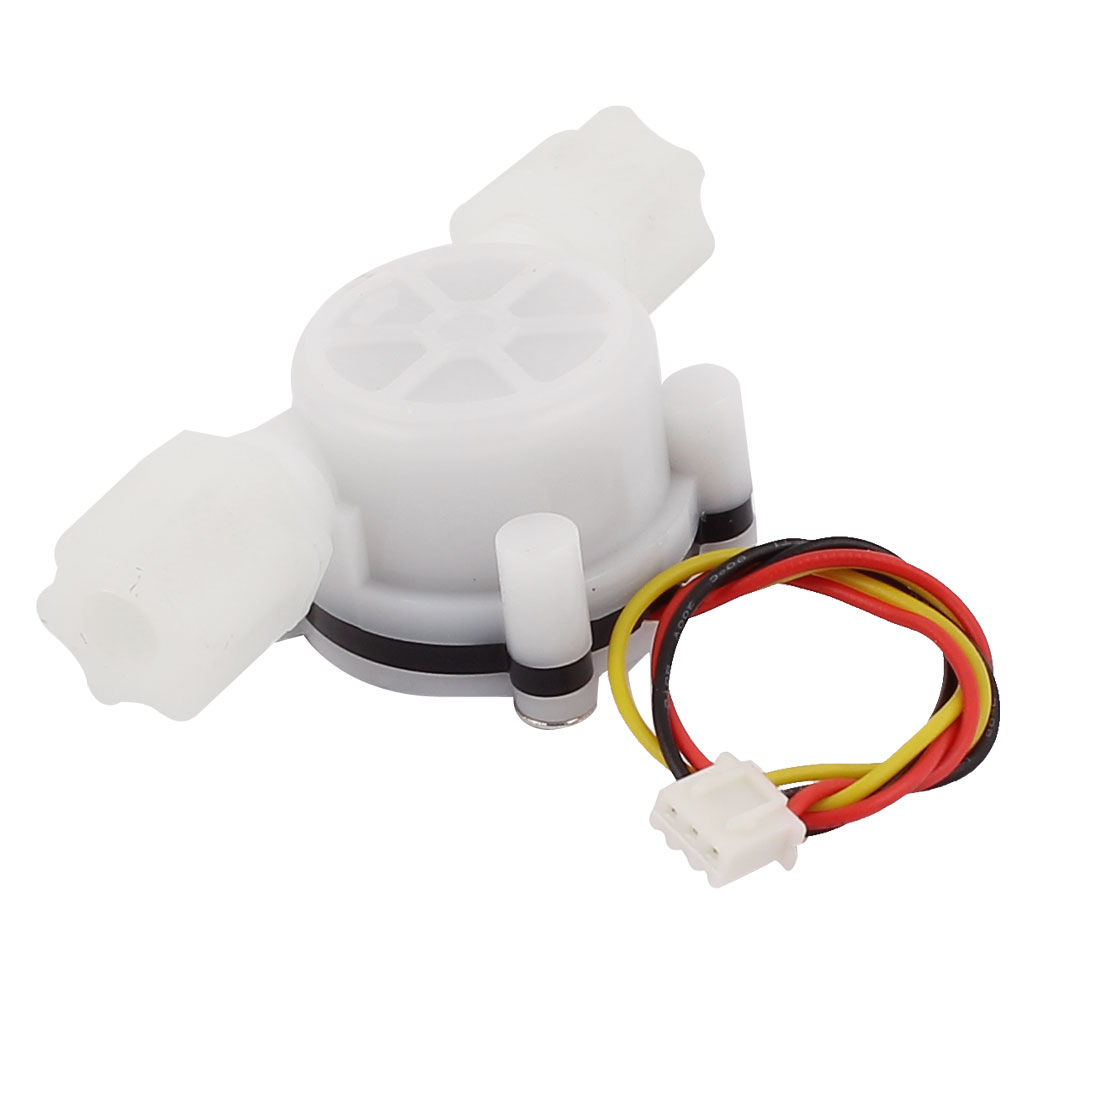 0.5-6L/min 1.2Mpa G1/4 Male Thread Water Flow Control Sensor Flowmeter